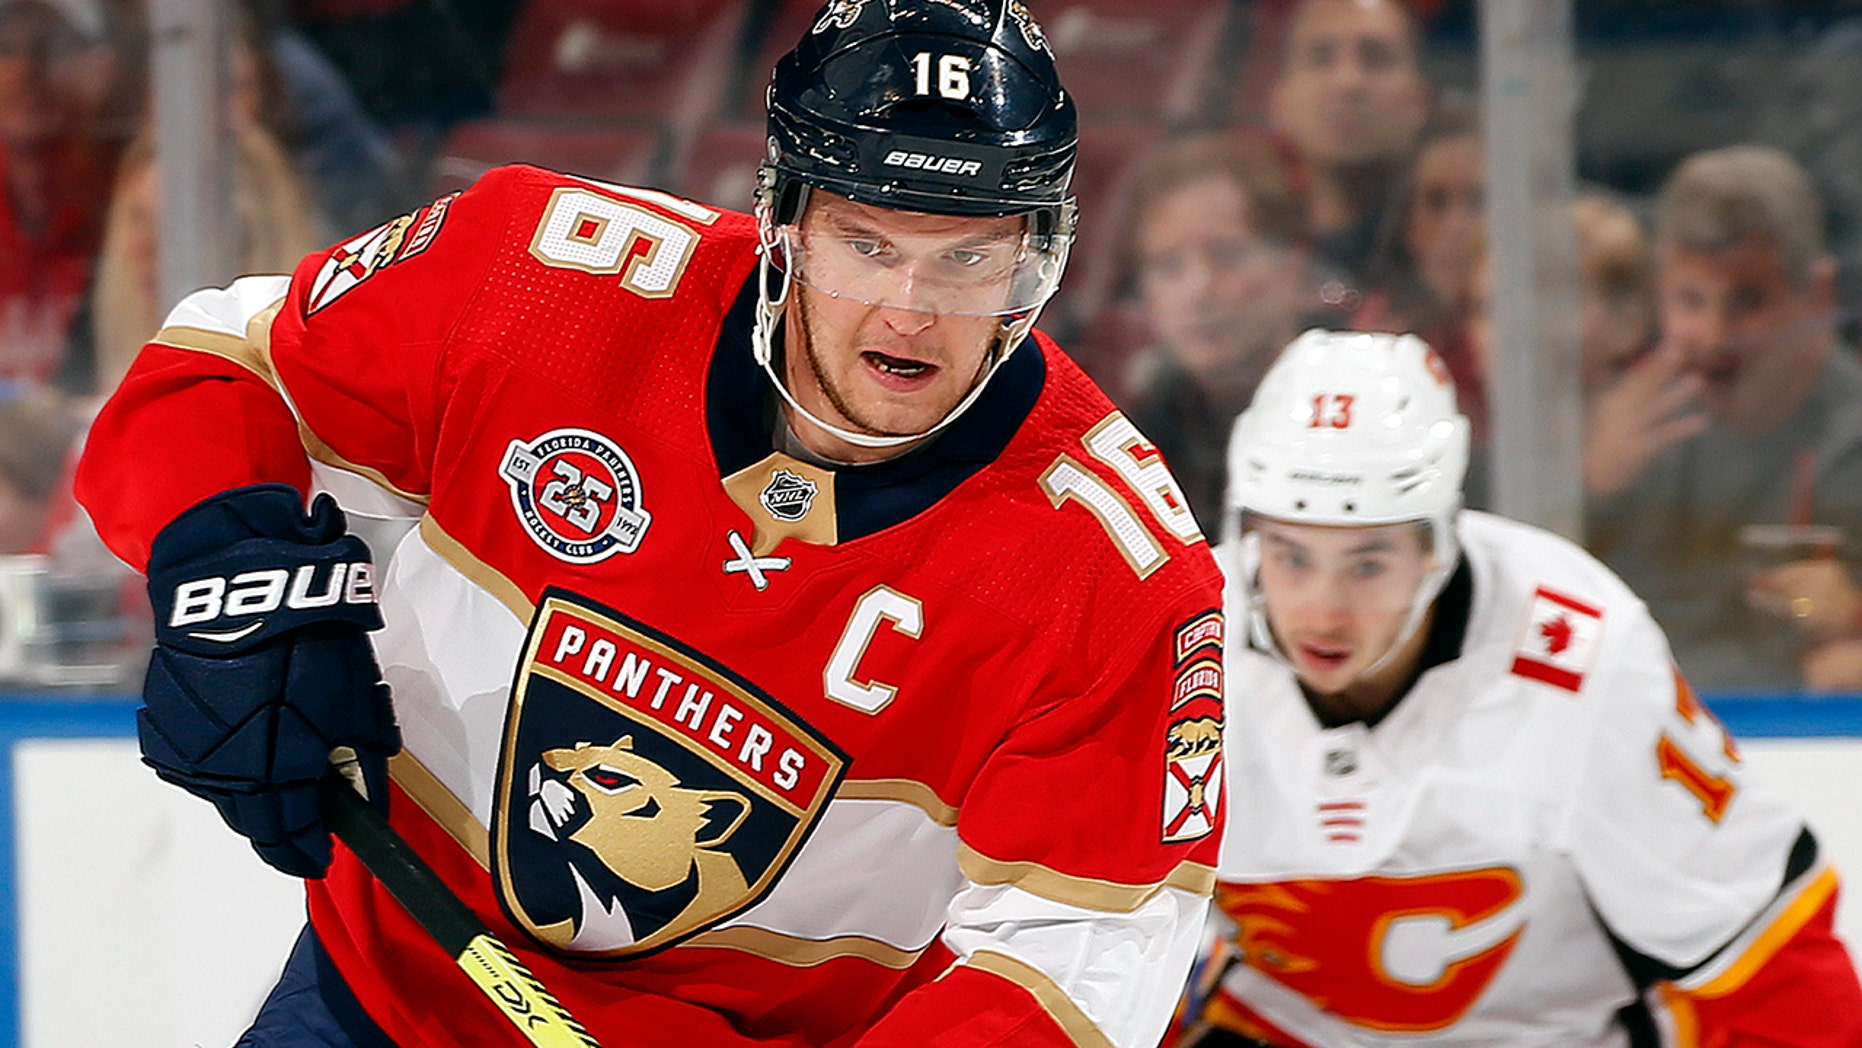 FEBRUARY 14: Aleksander Barkov of the Florida Panthers skates with the puck against the Calgary Flames. (GETTY)